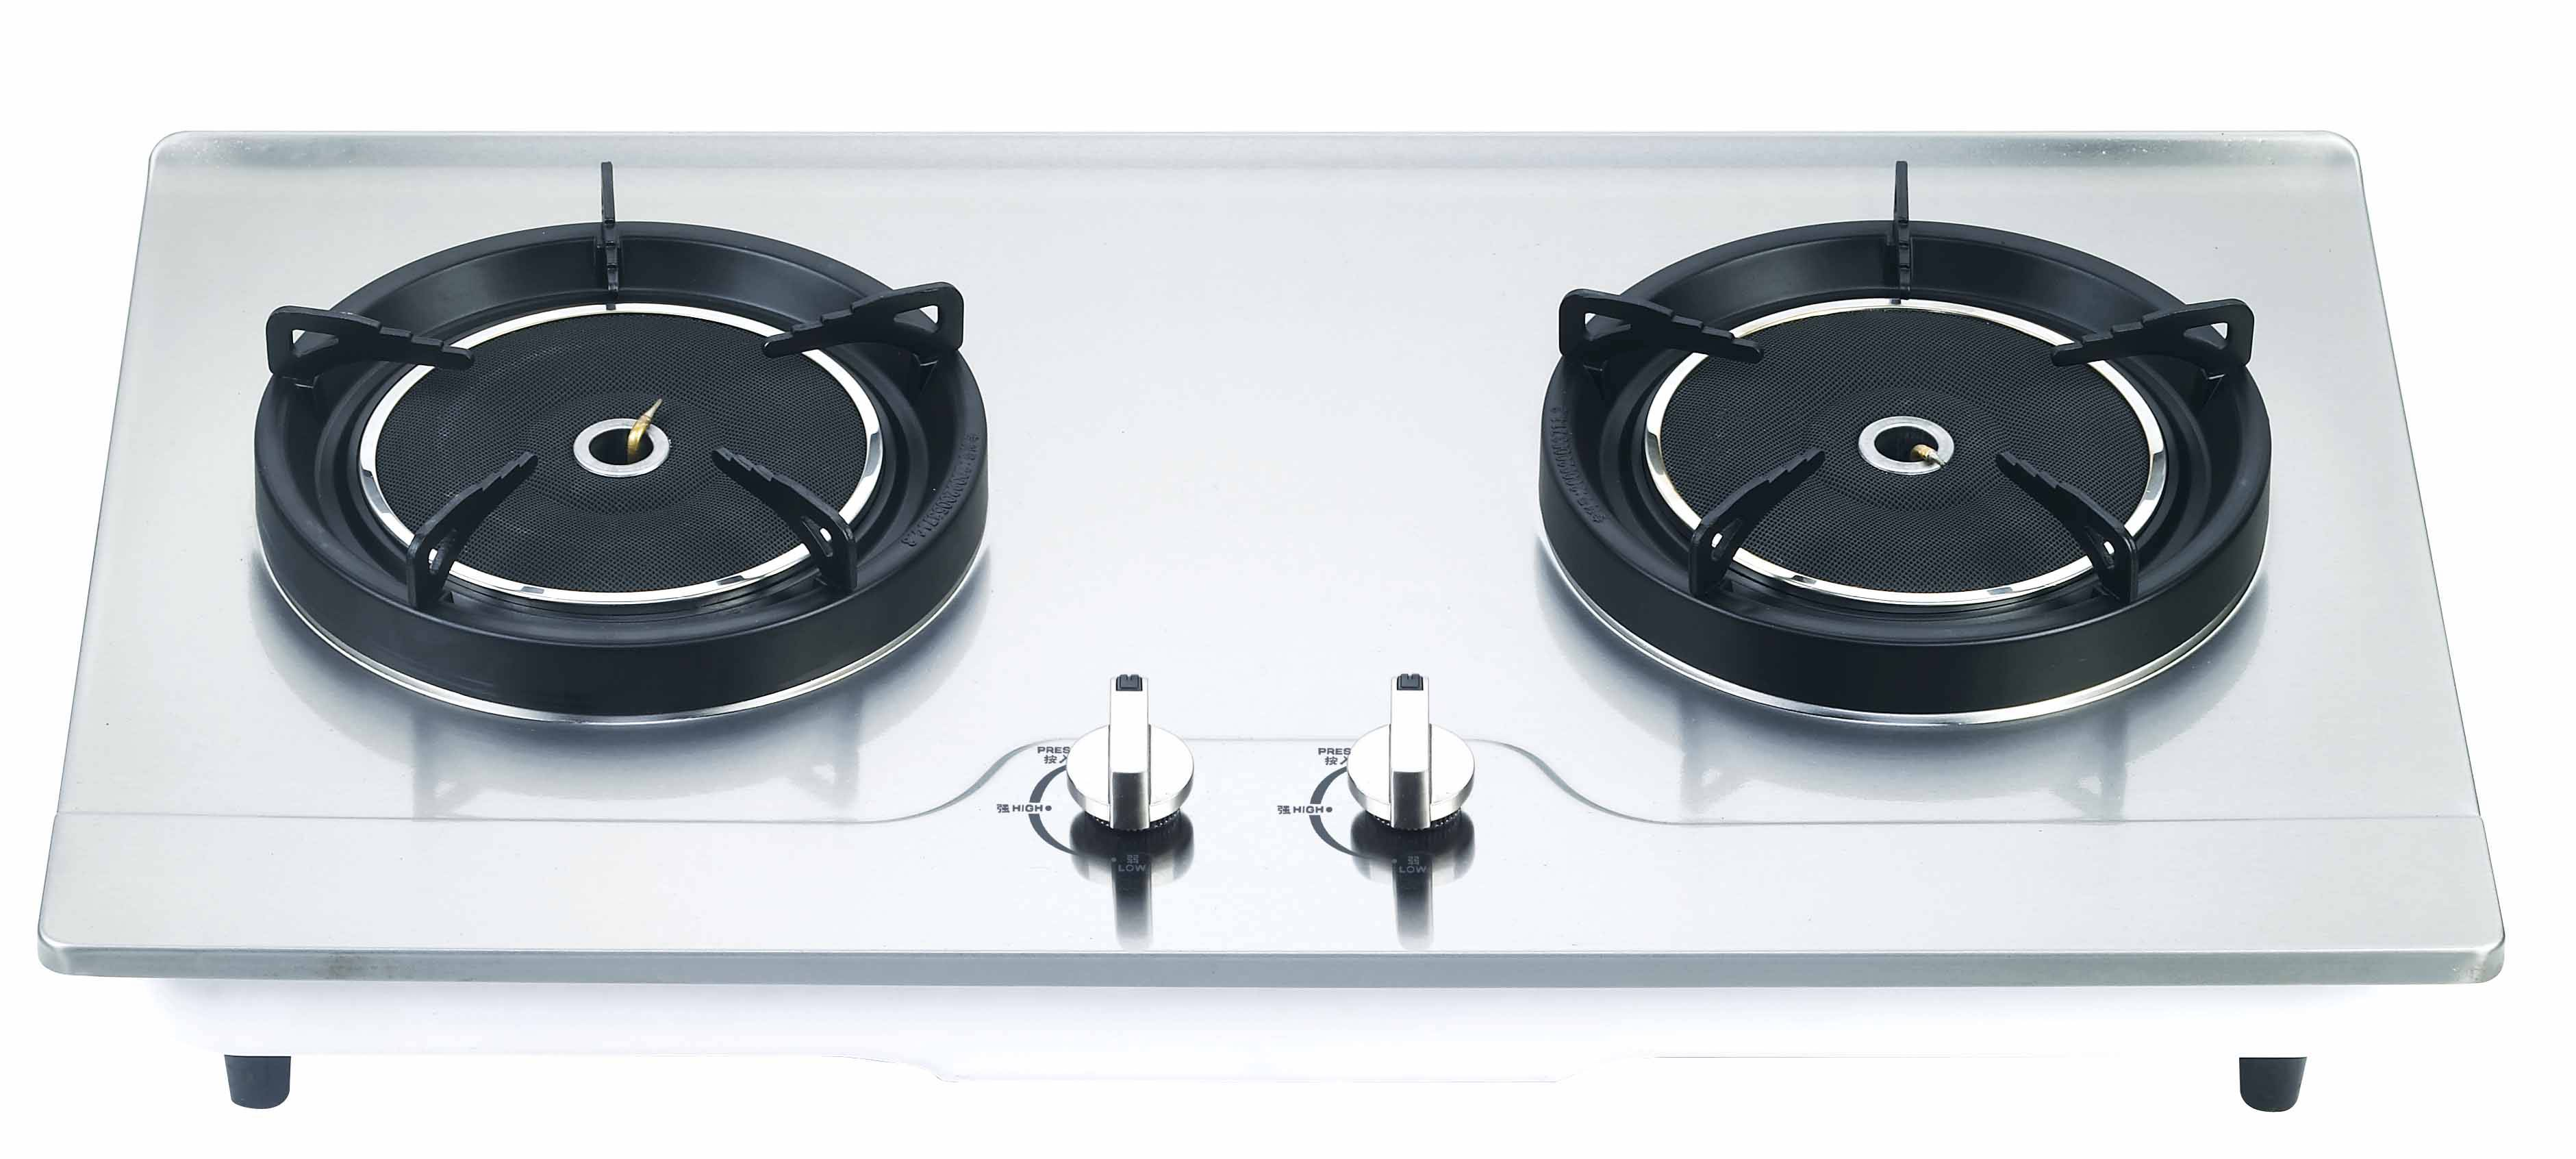 Captivating Table Gas Stove